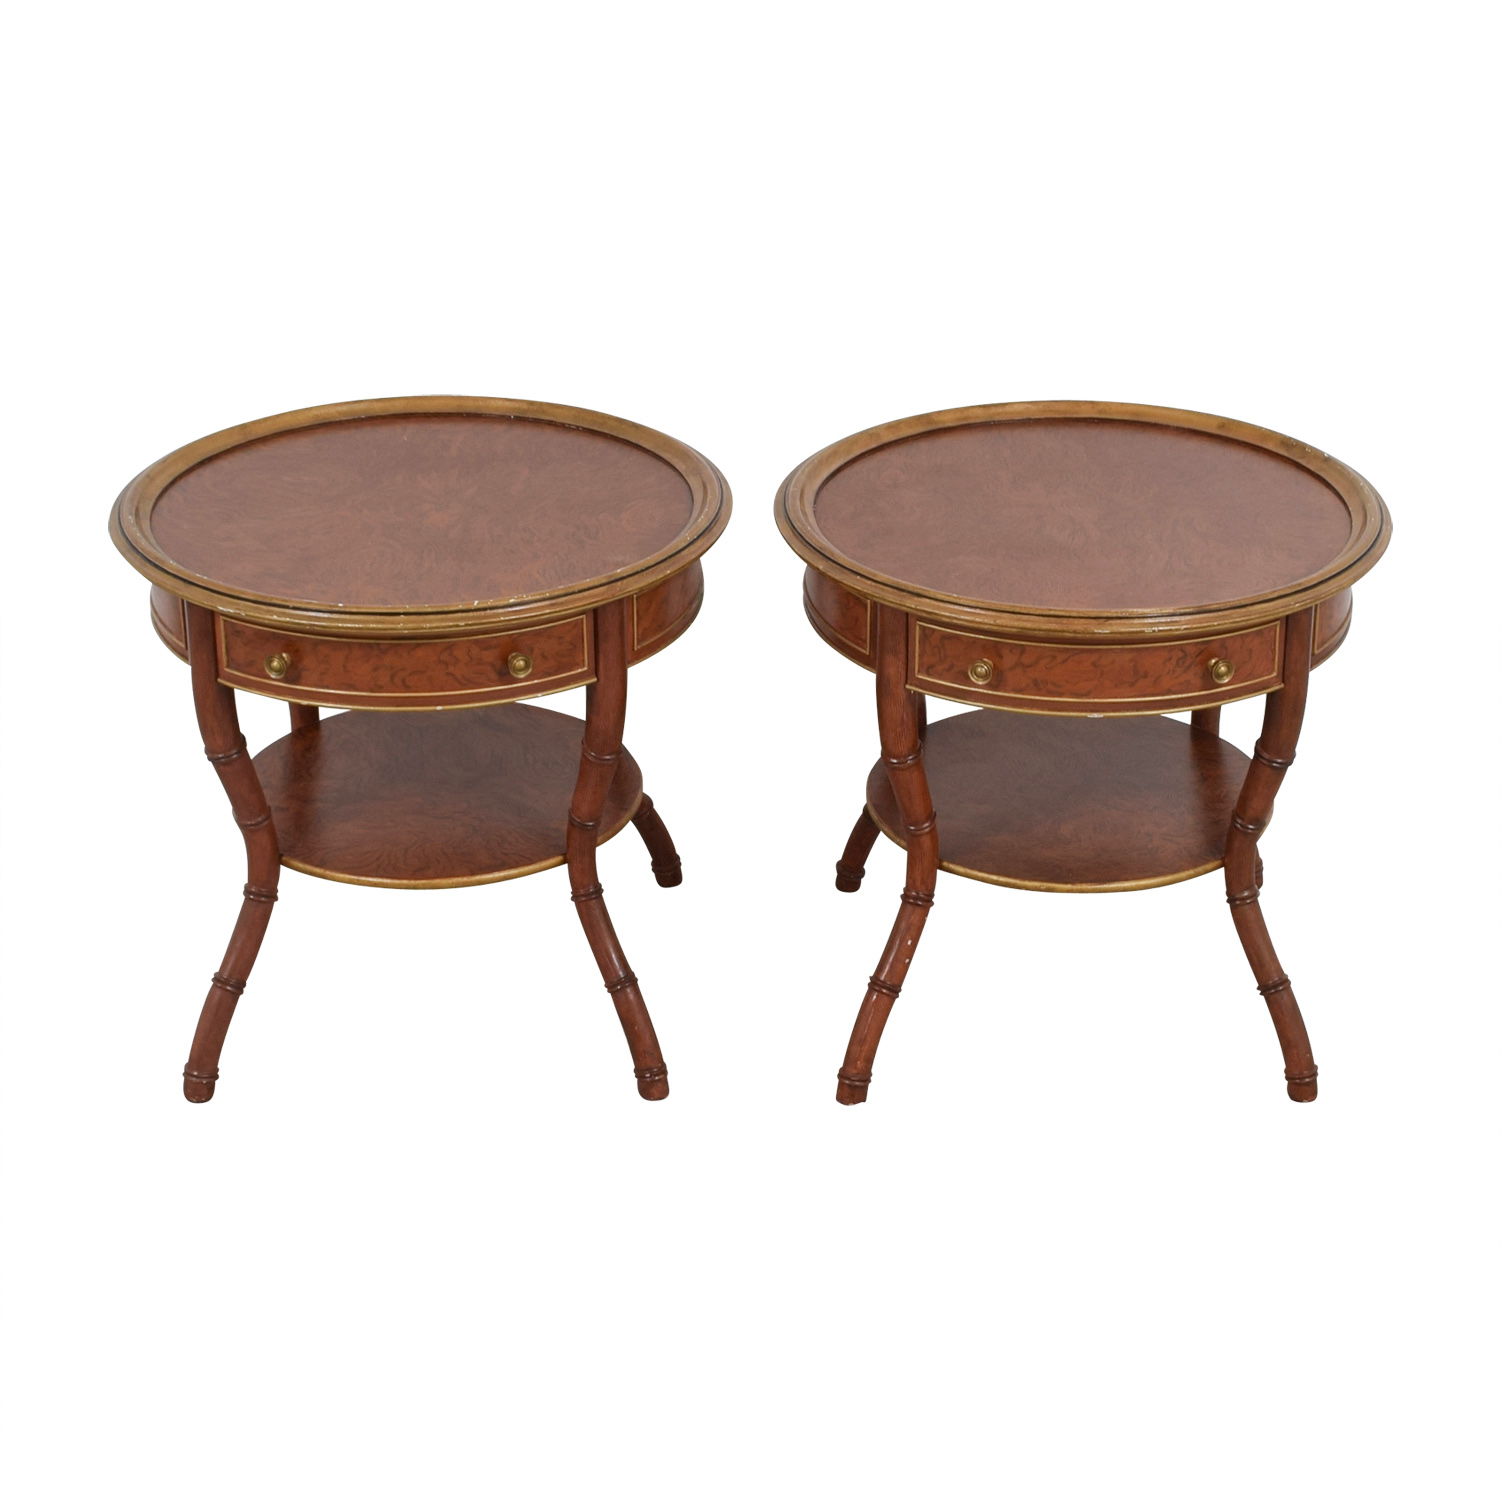 John Widdicomb John Widdicomb Mario Buatta Round Single Drawer Wood End Tables discount